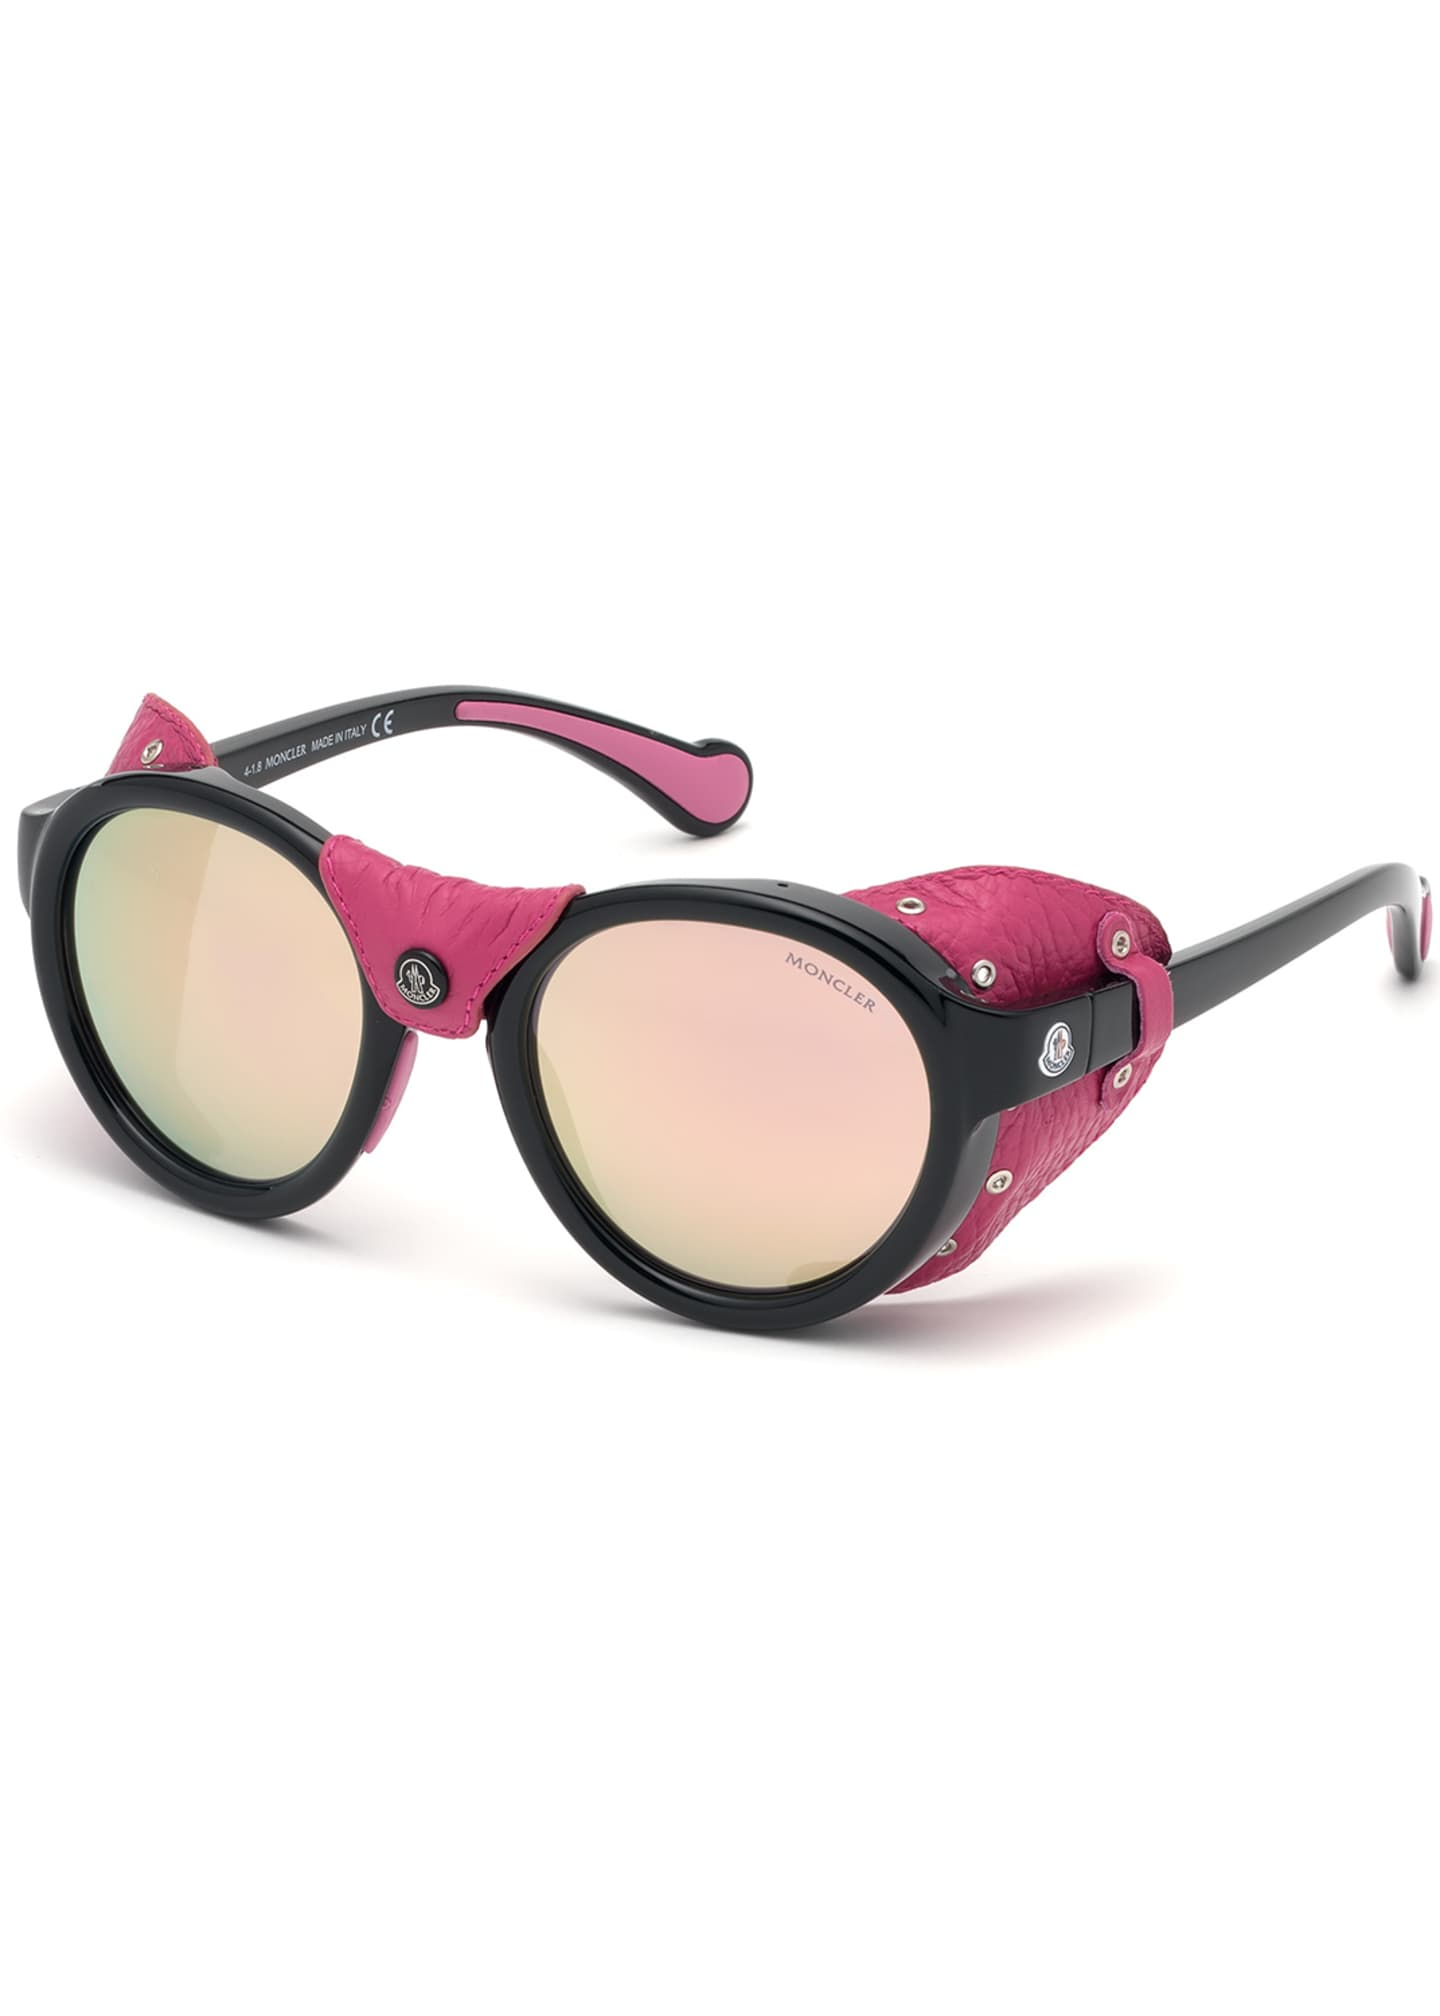 Image 1 of 1: Round Mirrored Sunglasses w/ Metallic Leather Side Blinders